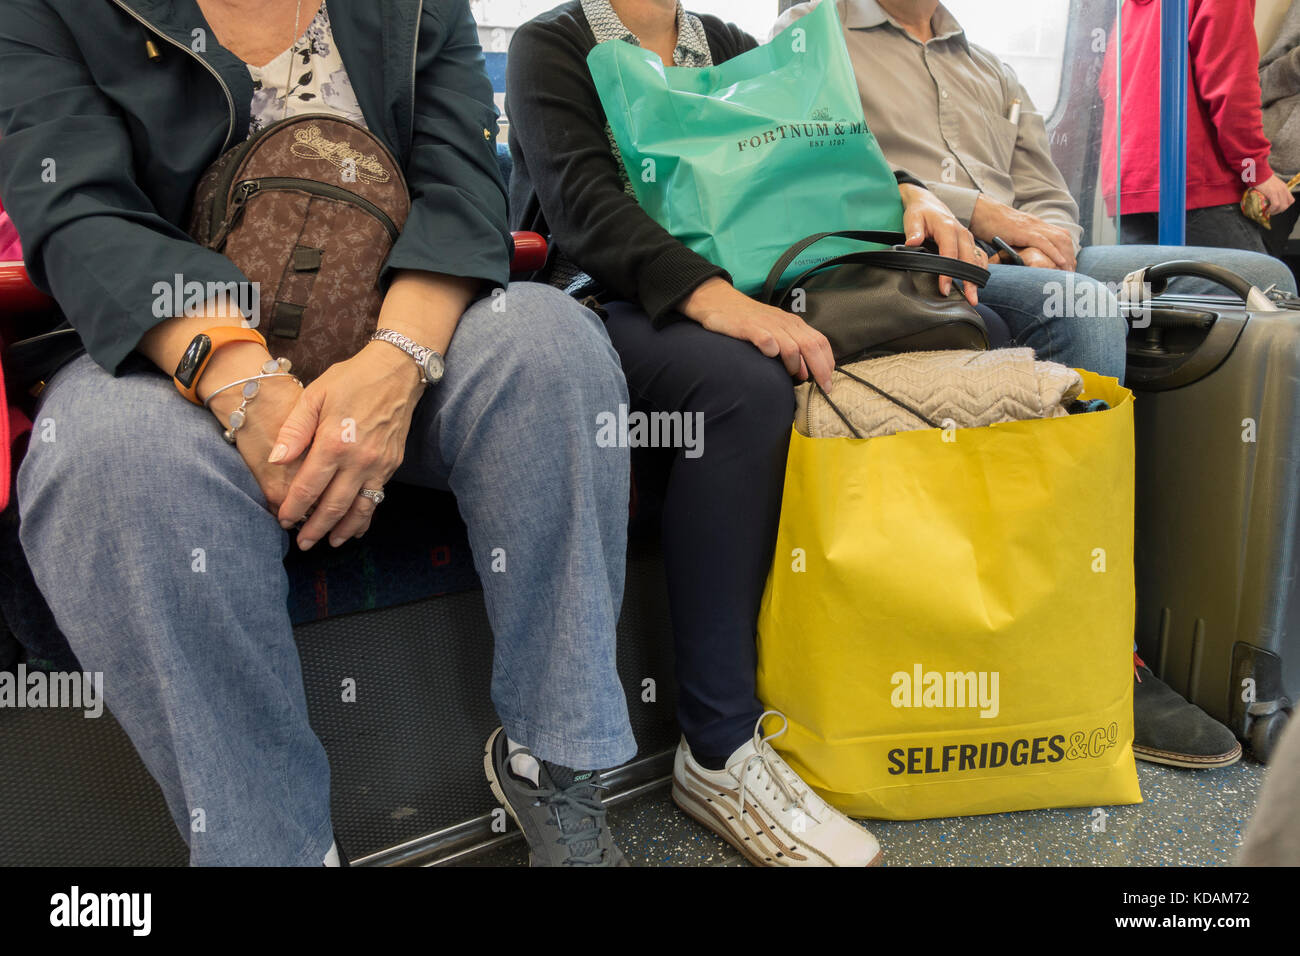 London Underground tube train - woman holding shopping bags from upmarket retailers Selfridges and Fortnum & - Stock Image